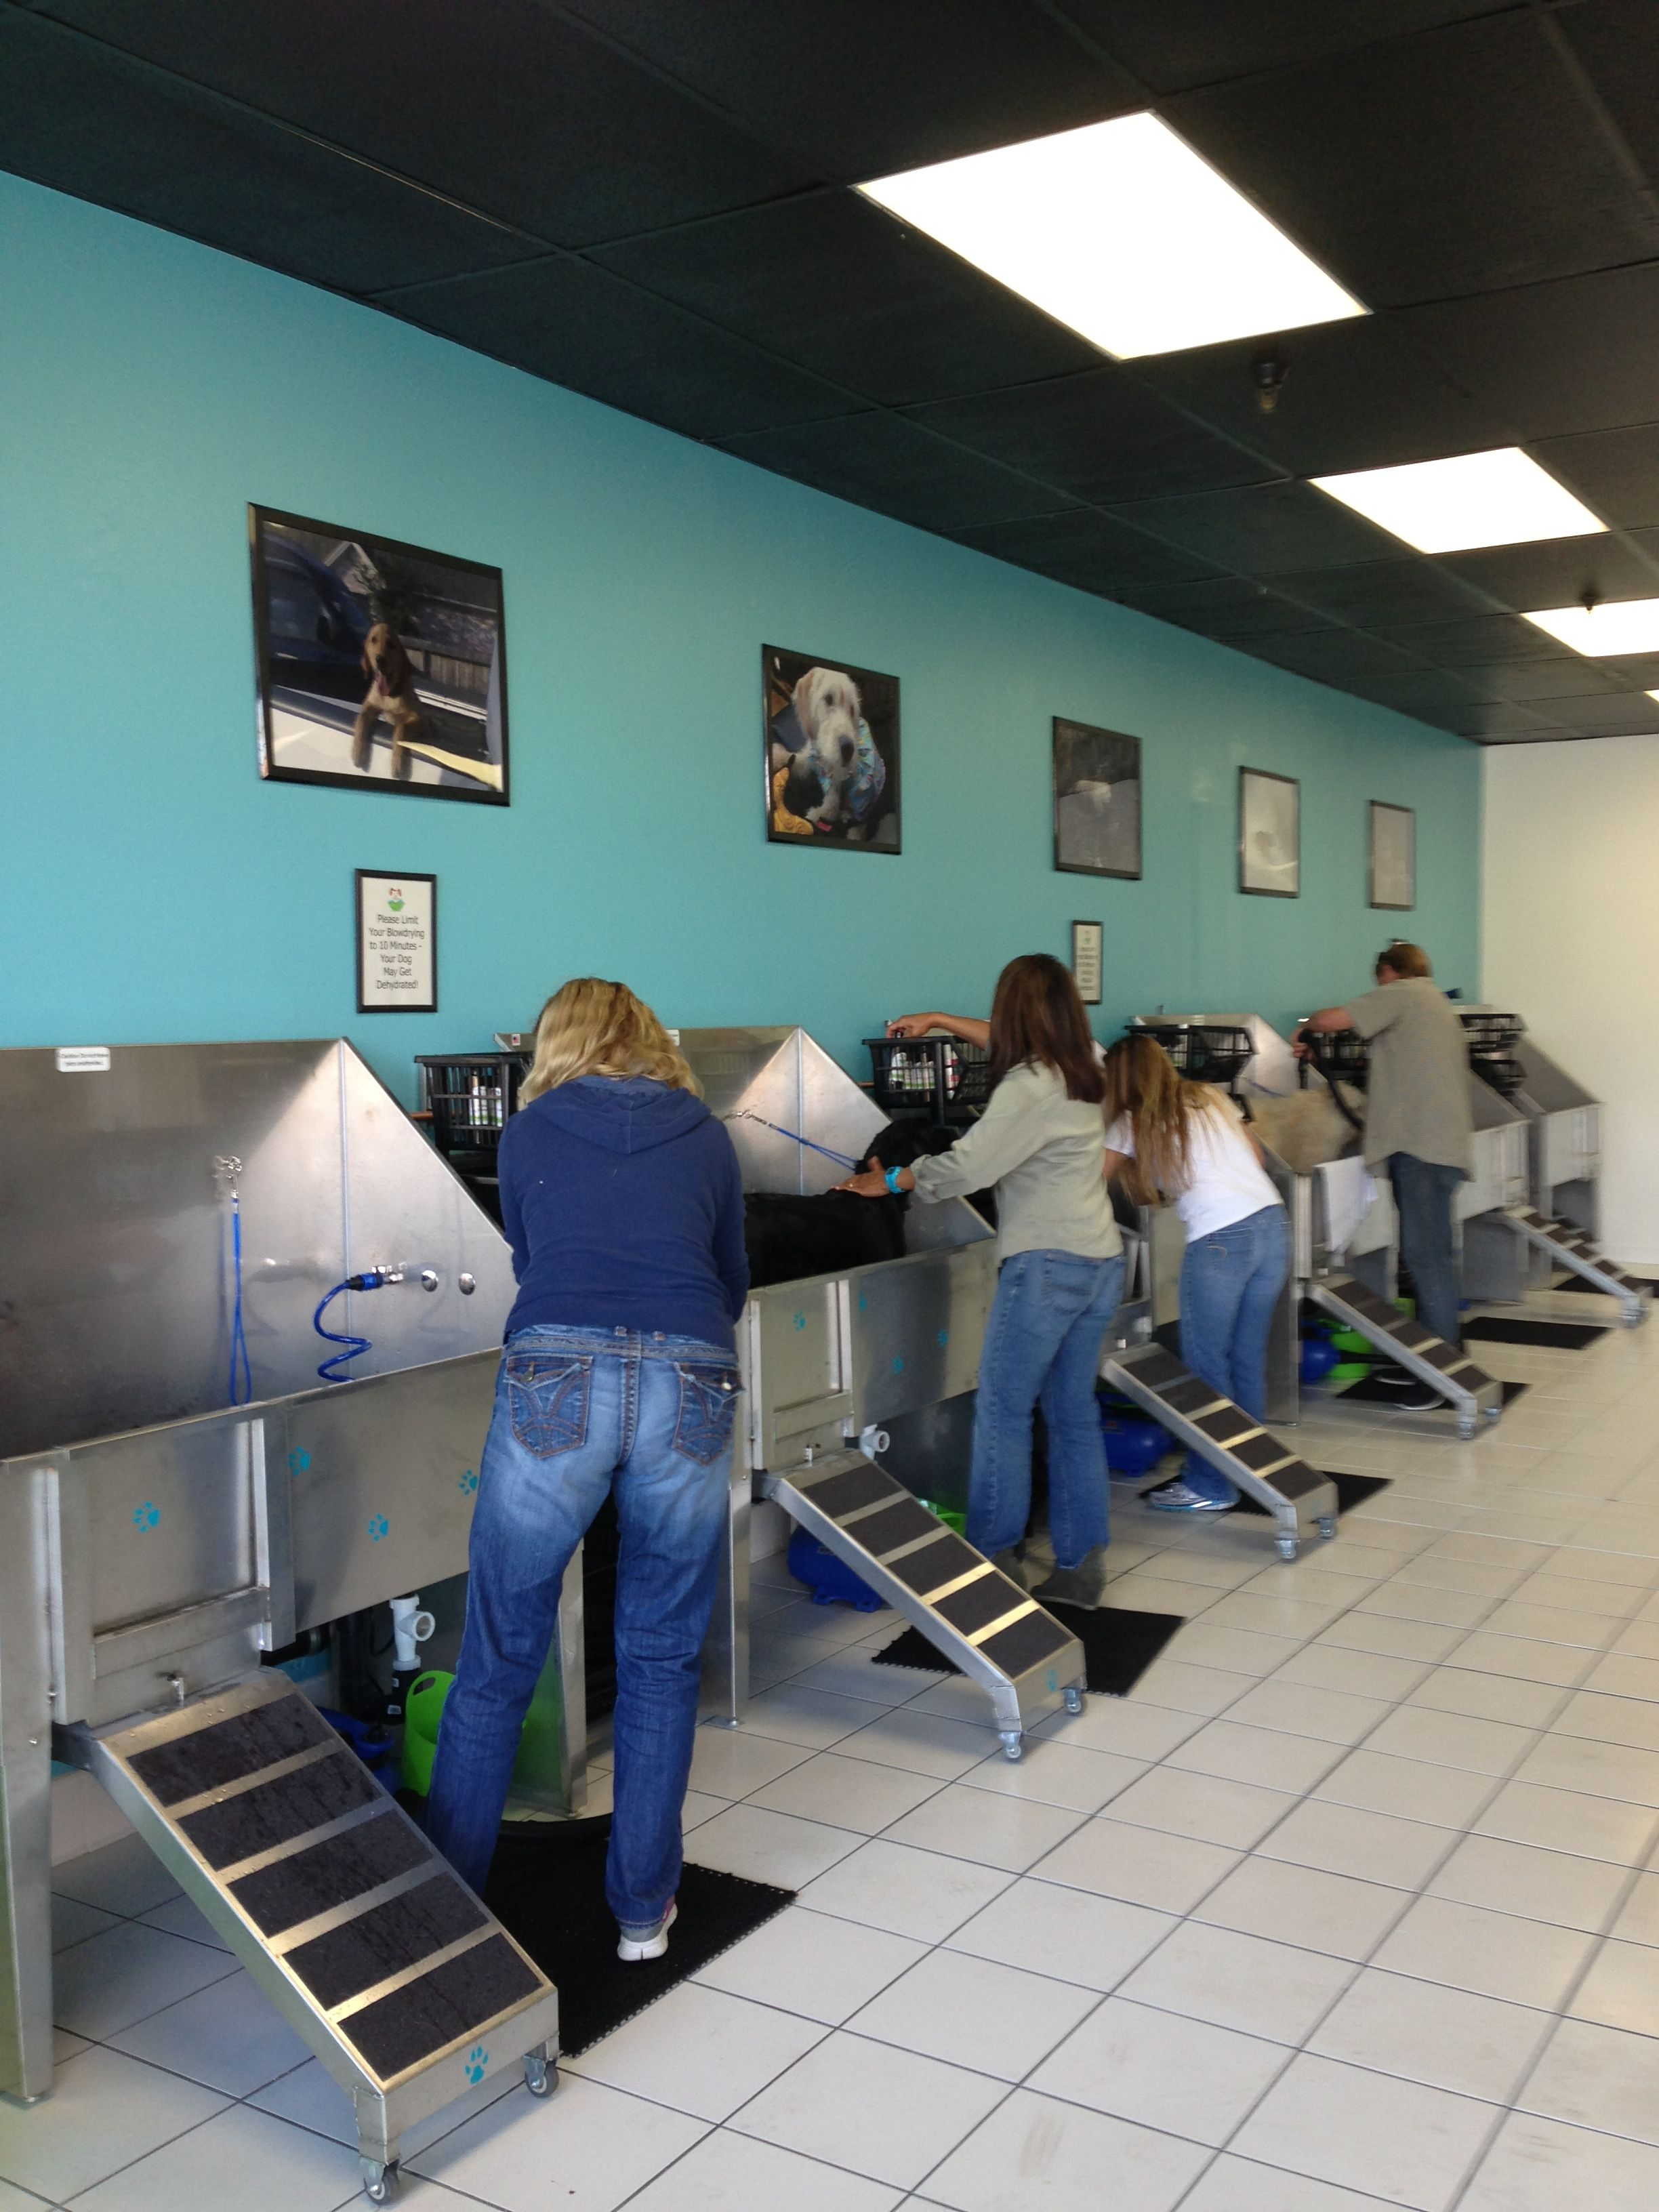 Repinned self service dog wash tub stalls at the dashing pooch repinned self service dog wash tub stalls at the dashing pooch cat lovers t shirt pinterest service dogs tubs and dog solutioingenieria Image collections